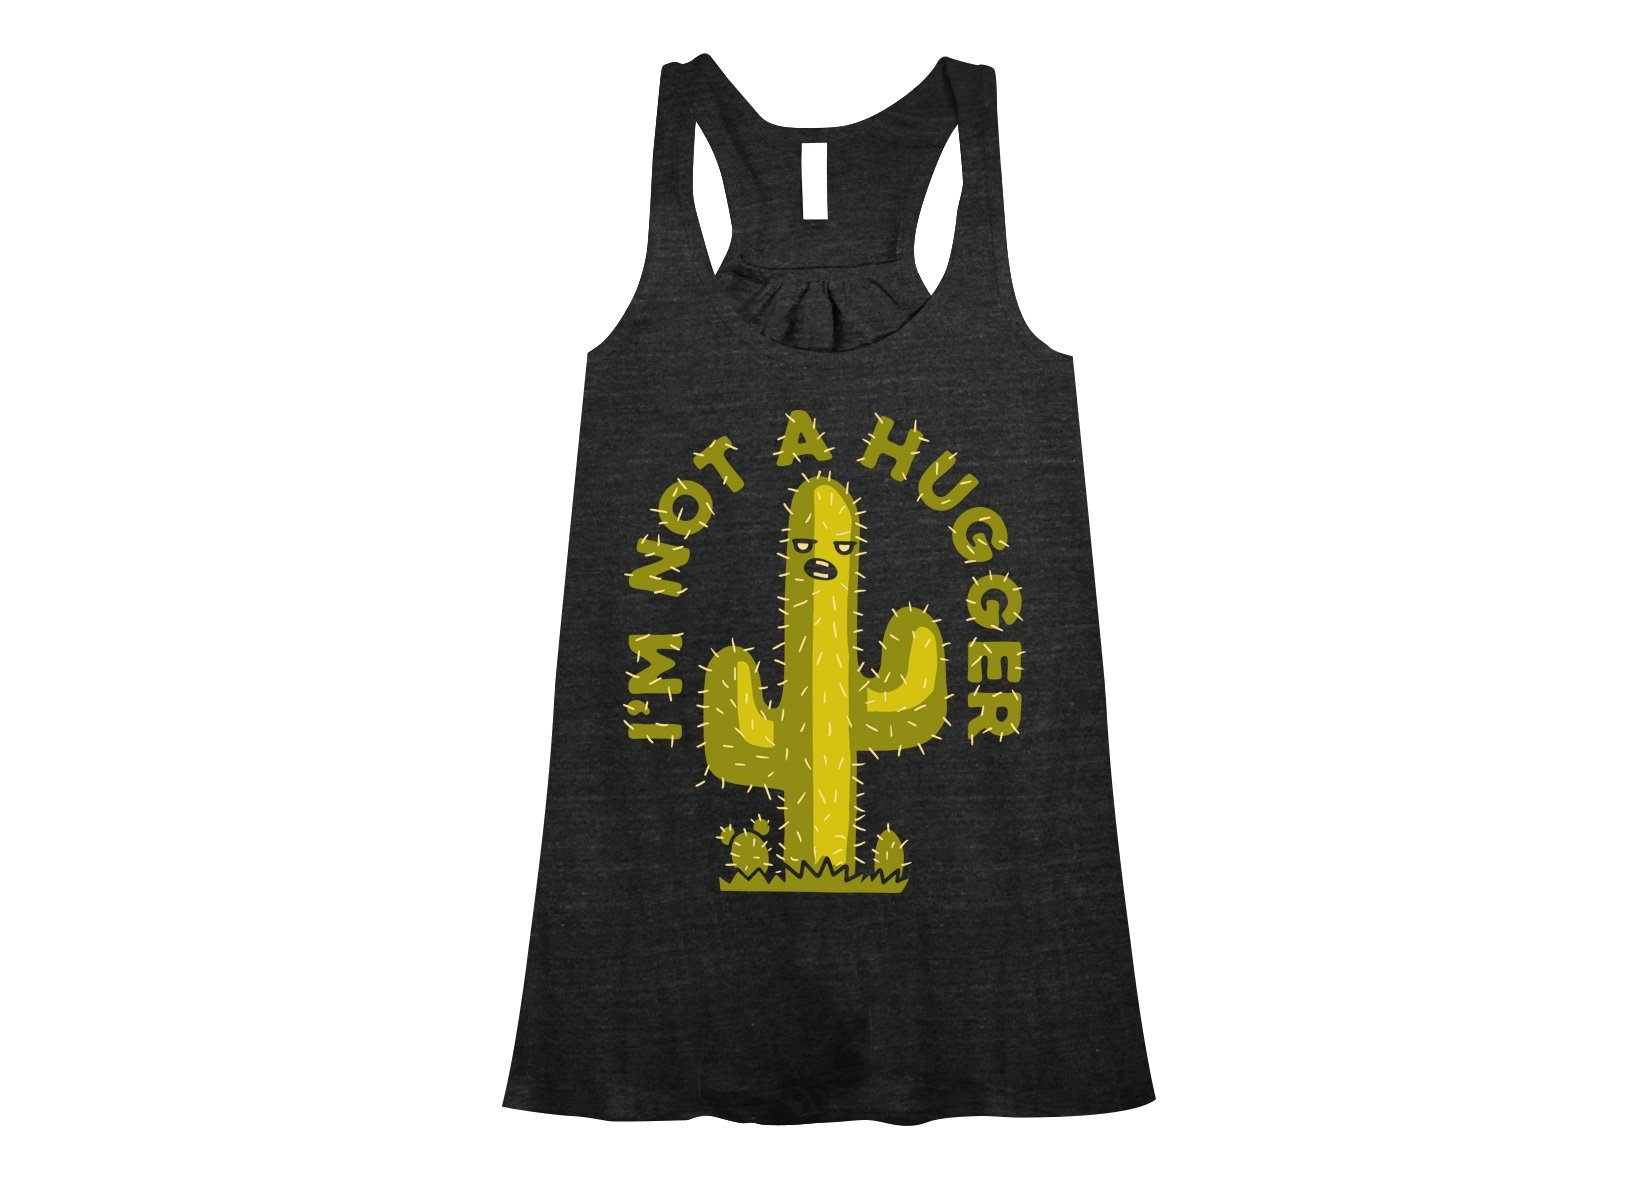 I'm Not A Hugger on Womens Tanks T-Shirt